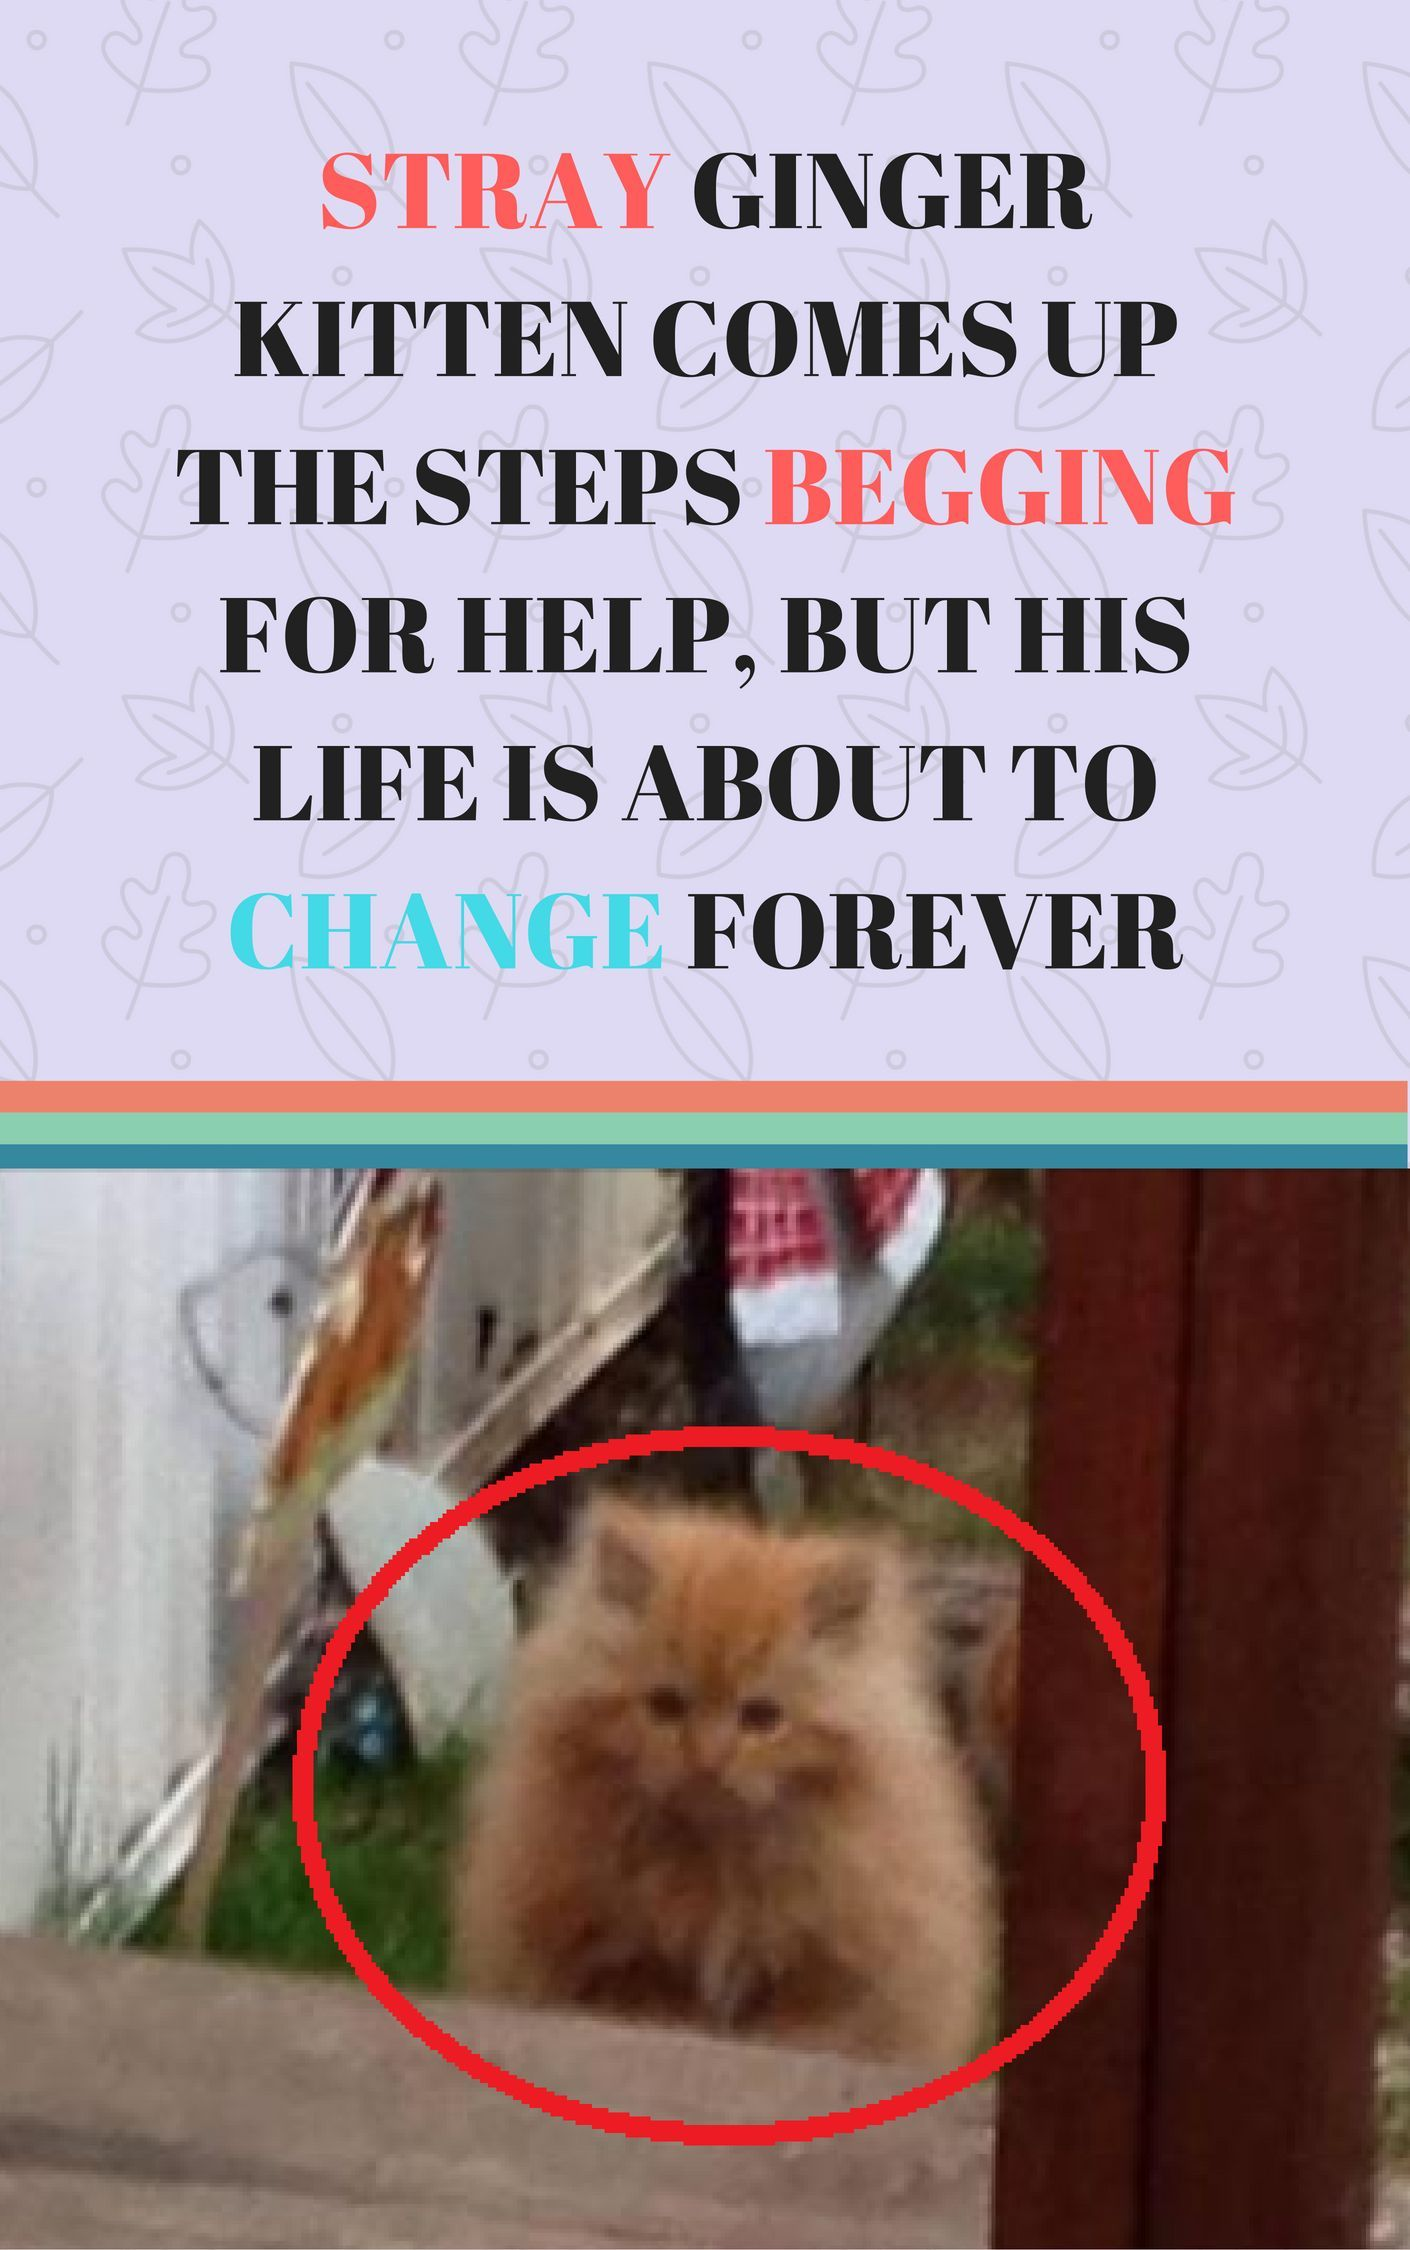 A Heartwarming Rescue Story Follow Us For More Cats And Kittens Cute Cats Animals And Pets Rescue Stories Cats Ki Ginger Kitten Kittens Cat Has Fleas